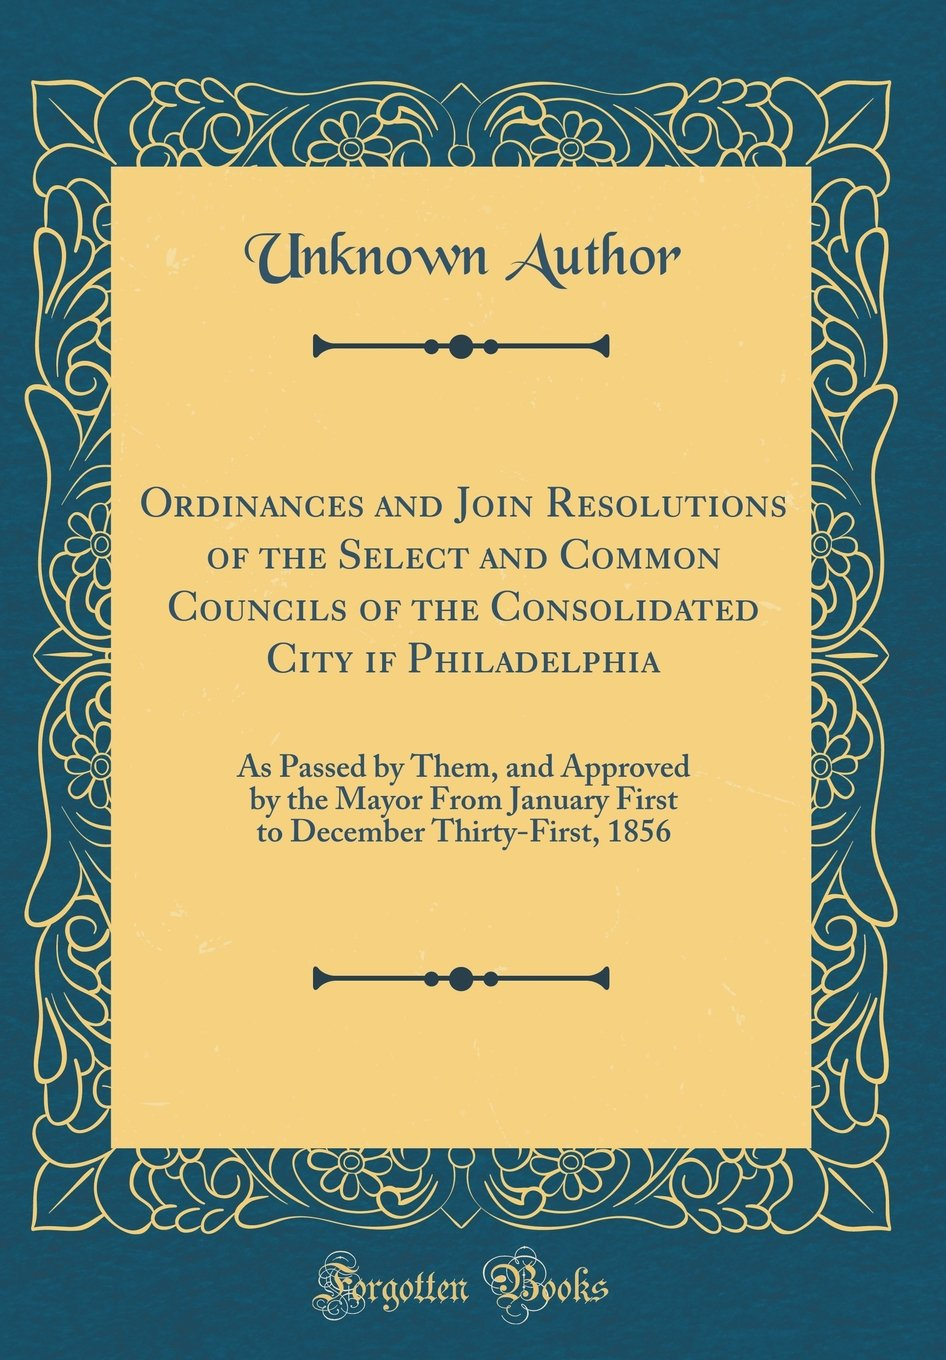 Read Online Ordinances and Join Resolutions of the Select and Common Councils of the Consolidated City if Philadelphia: As Passed by Them, and Approved by the ... December Thirty-First, 1856 (Classic Reprint) PDF